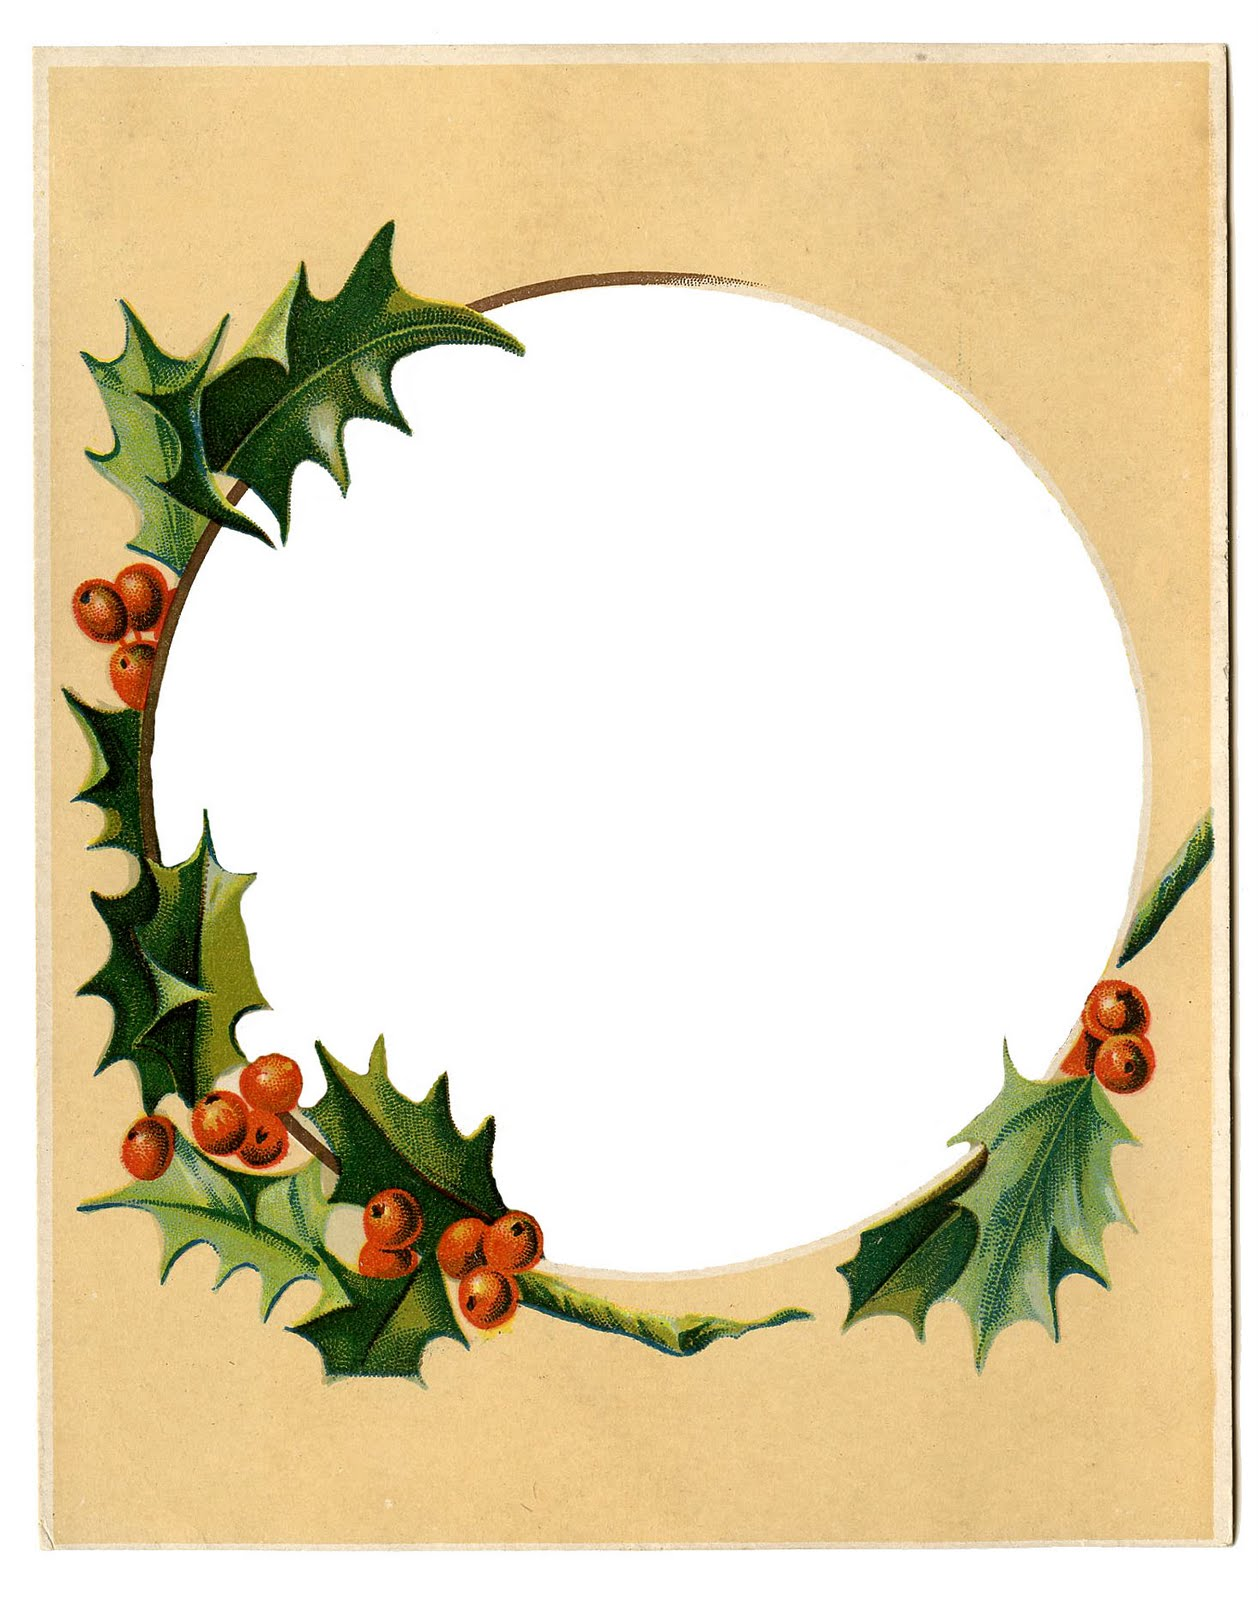 Vintage Christmas Clipart at GetDrawings.com | Free for personal use ...